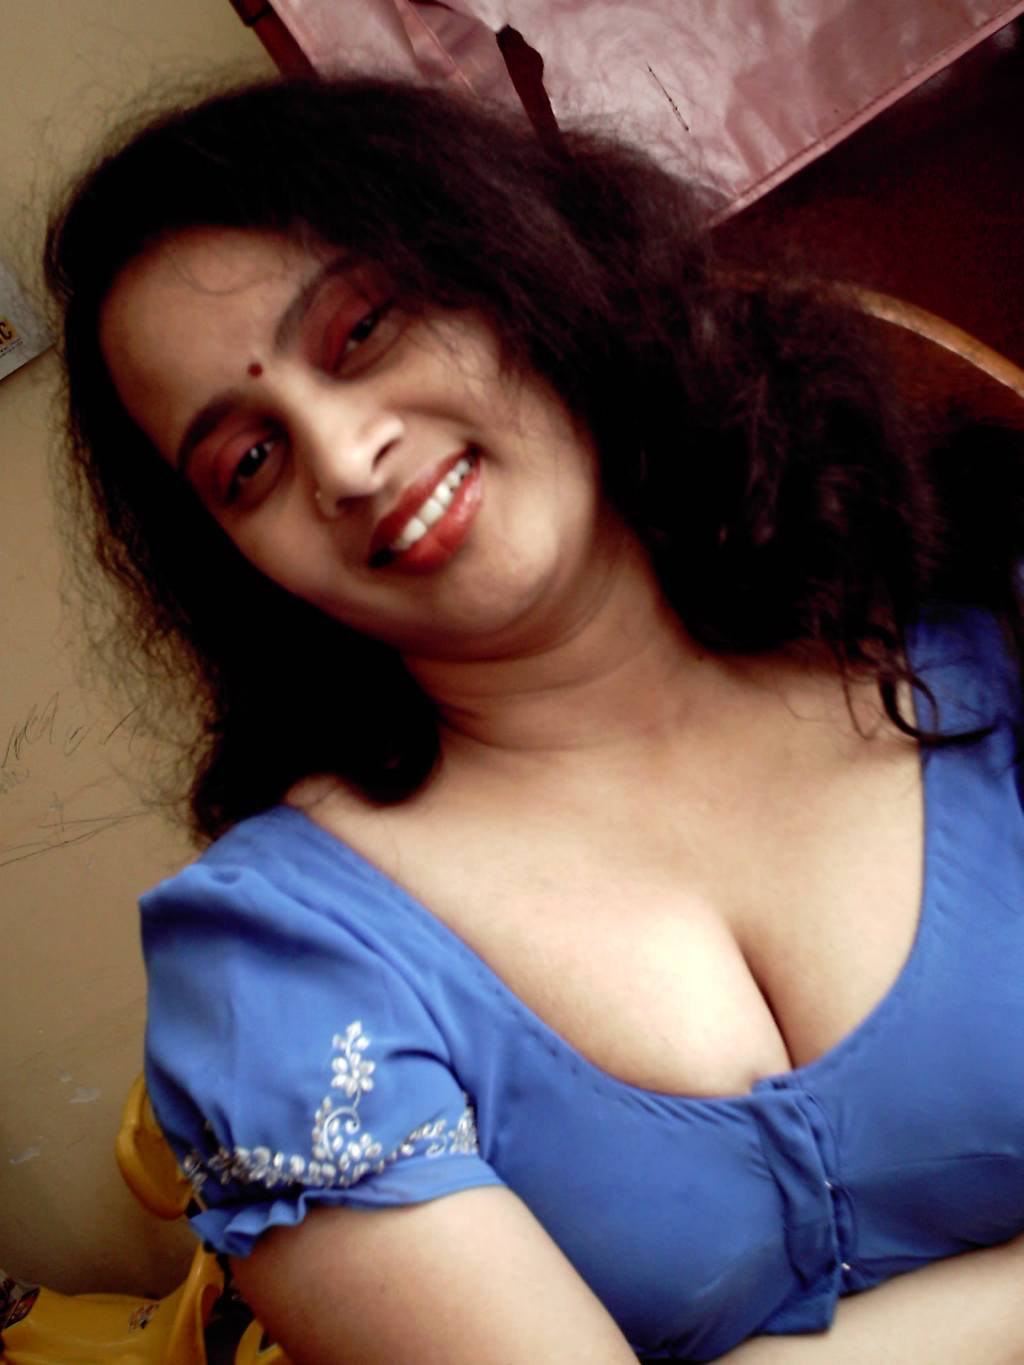 hd desi nude girl photo